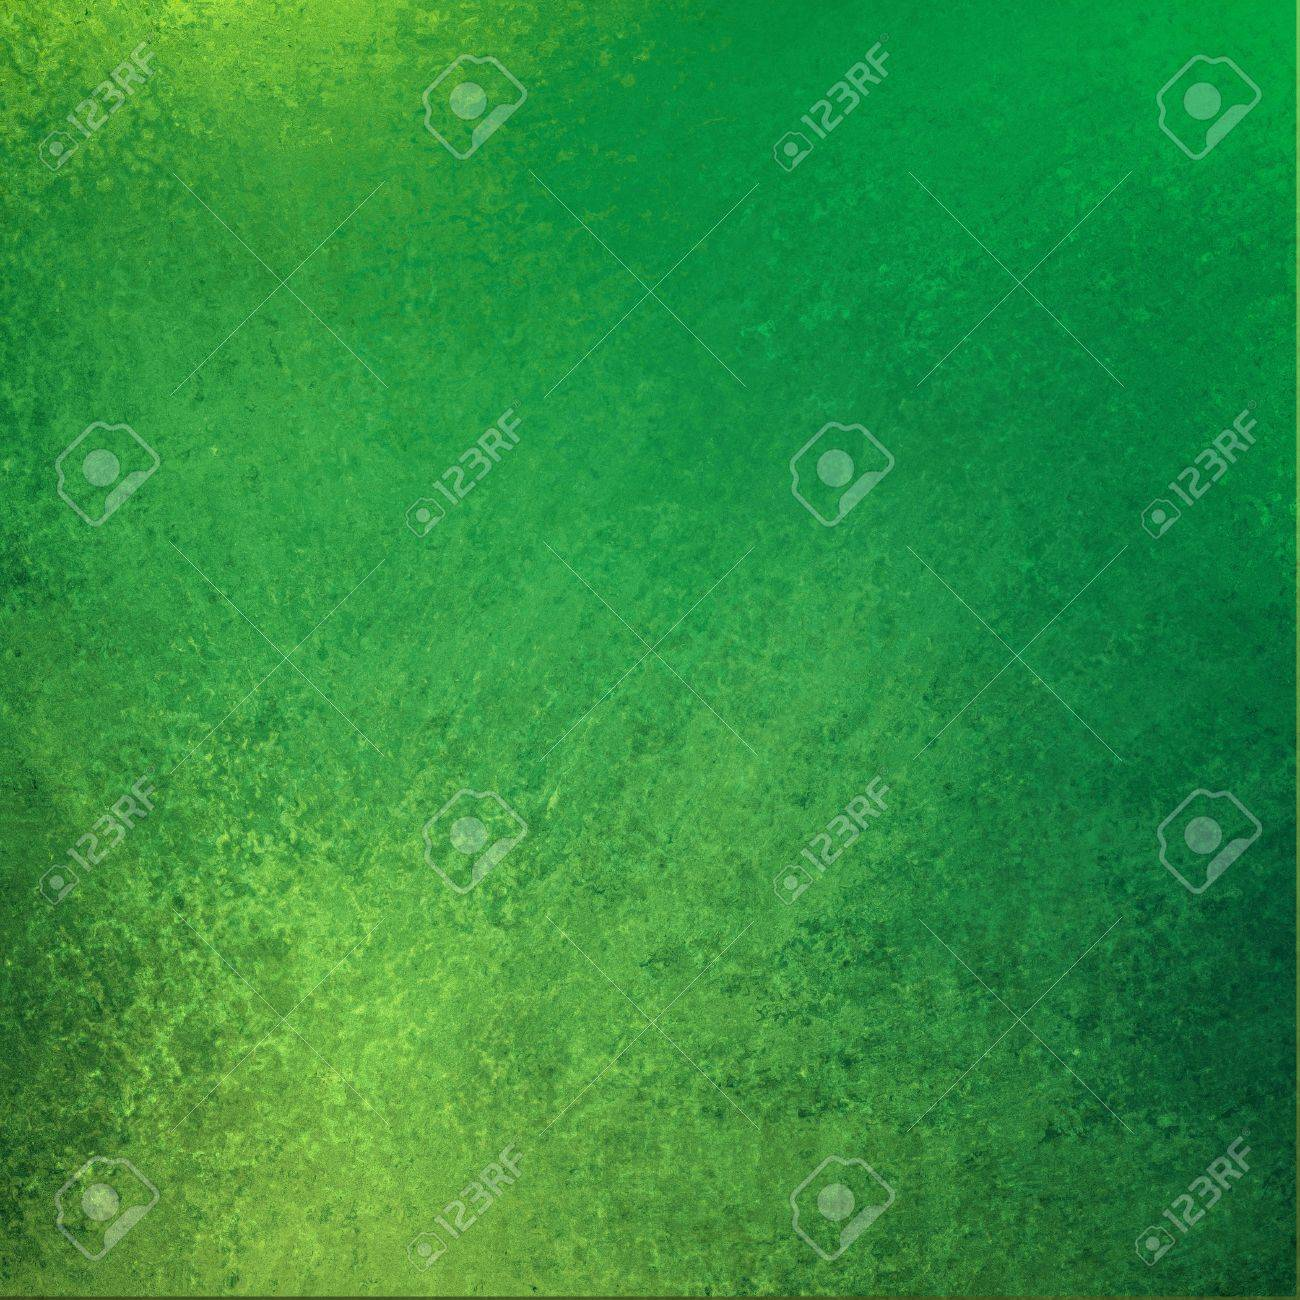 Green Background Vintage Grunge Texture Design Yellow Color Shiny Wall Paint